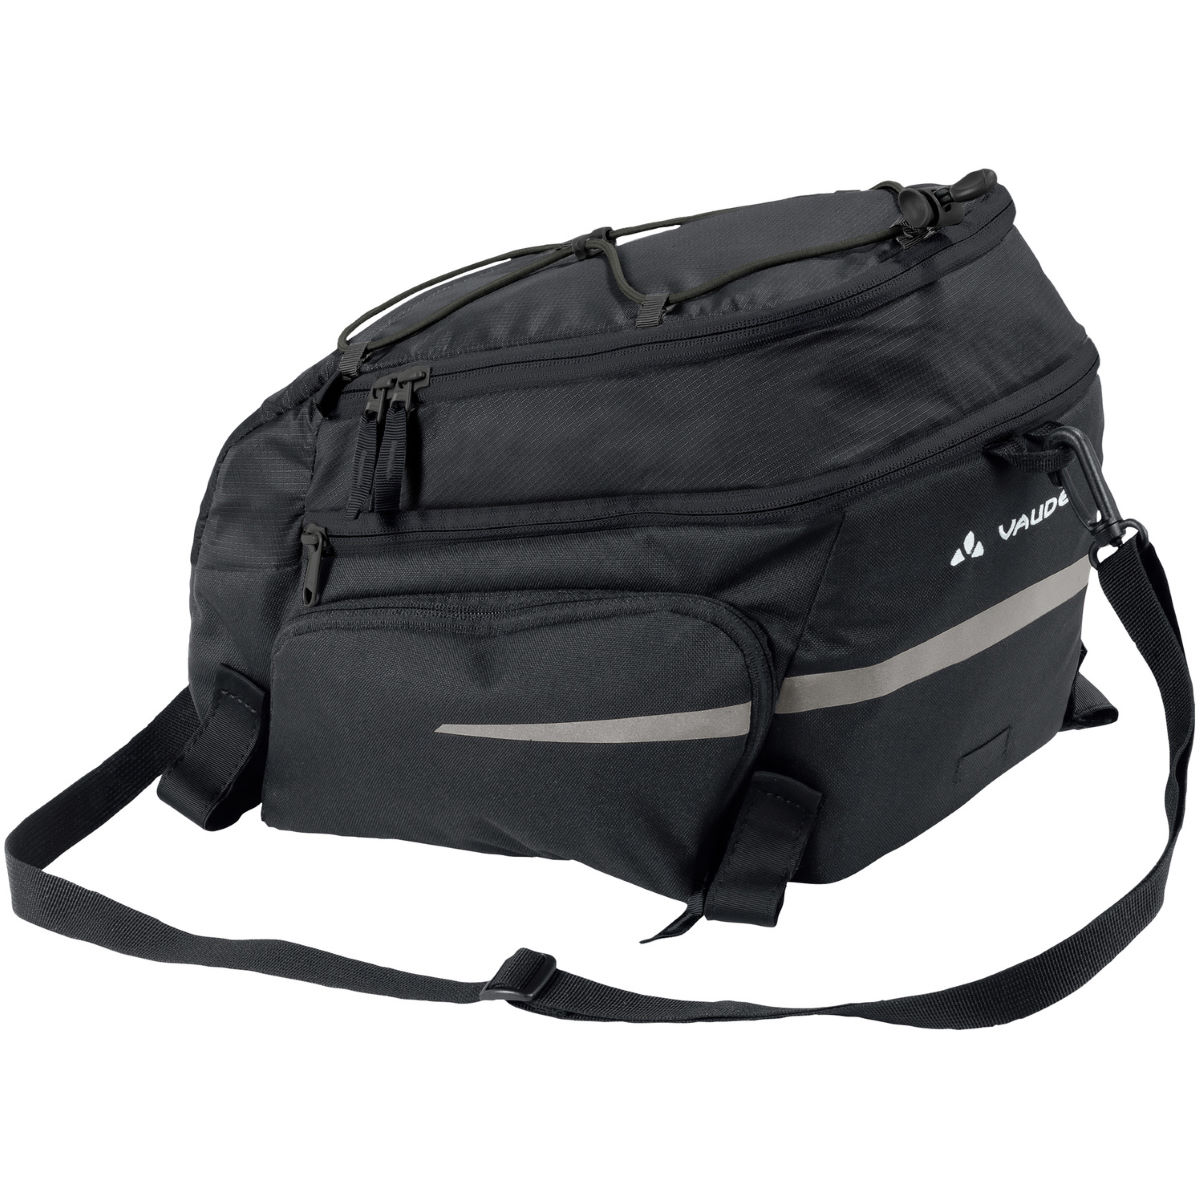 Vaude Silkroad Plus Rack Bag   Rack Bags